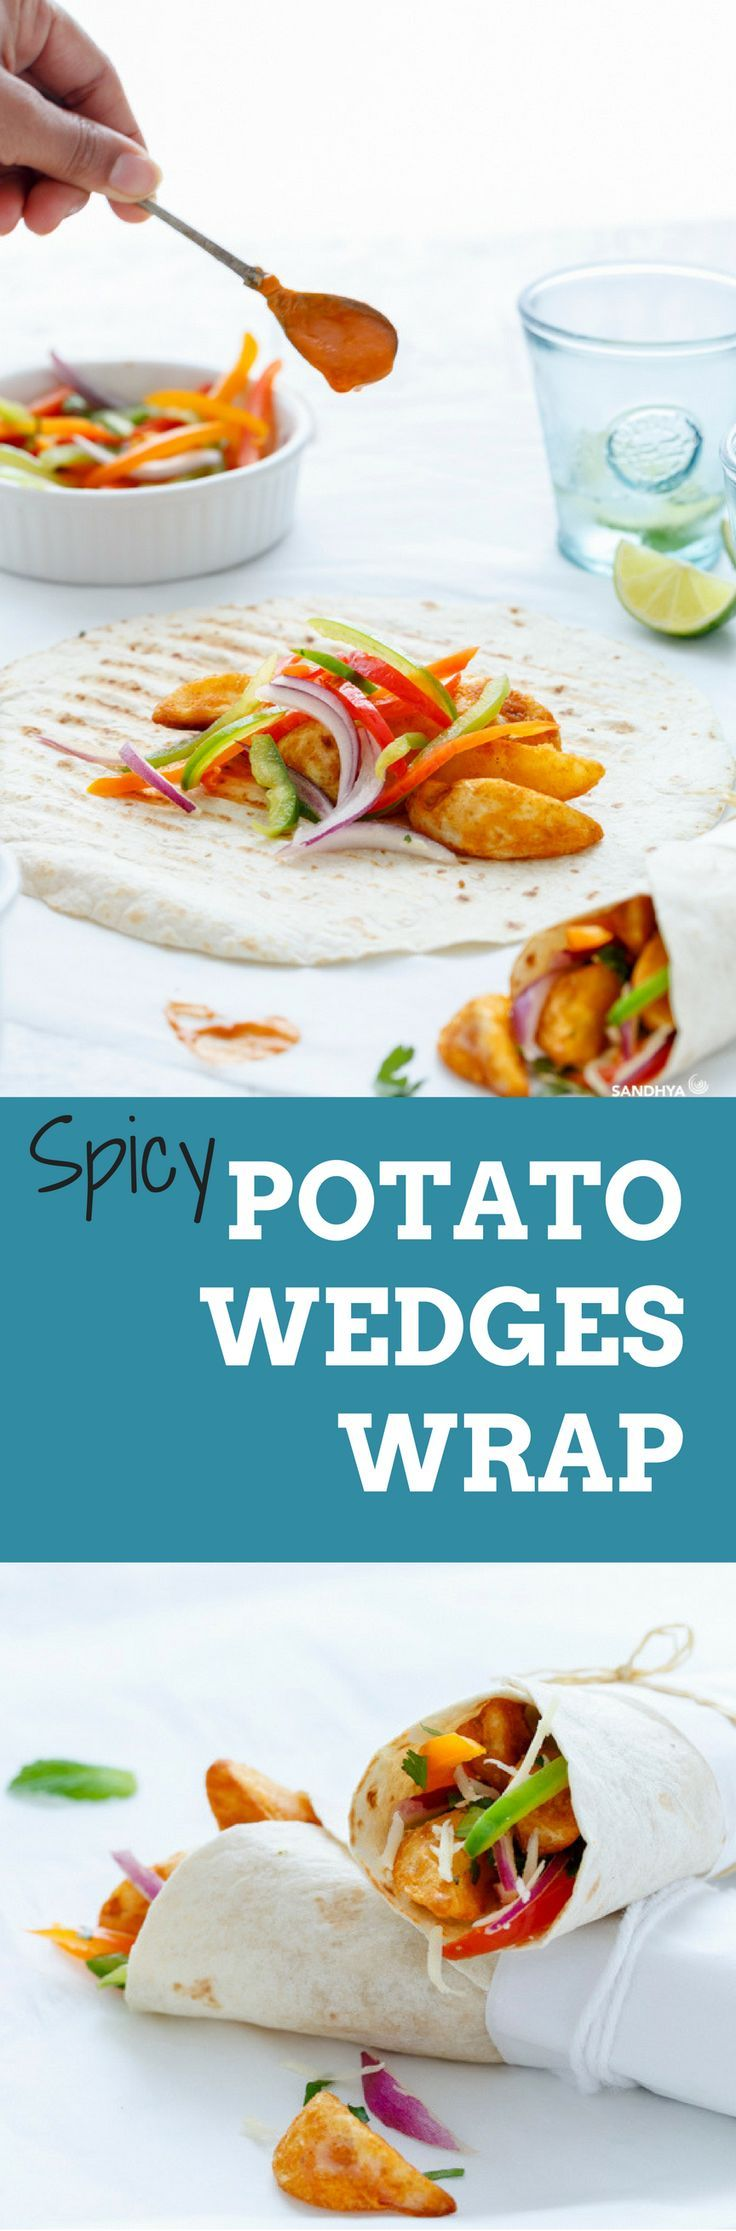 These SPICY POTATO WEDGES WRAP can be put together in a Jiffy. Jazz it up with Masala Ketchup and some Coriander Chutney.